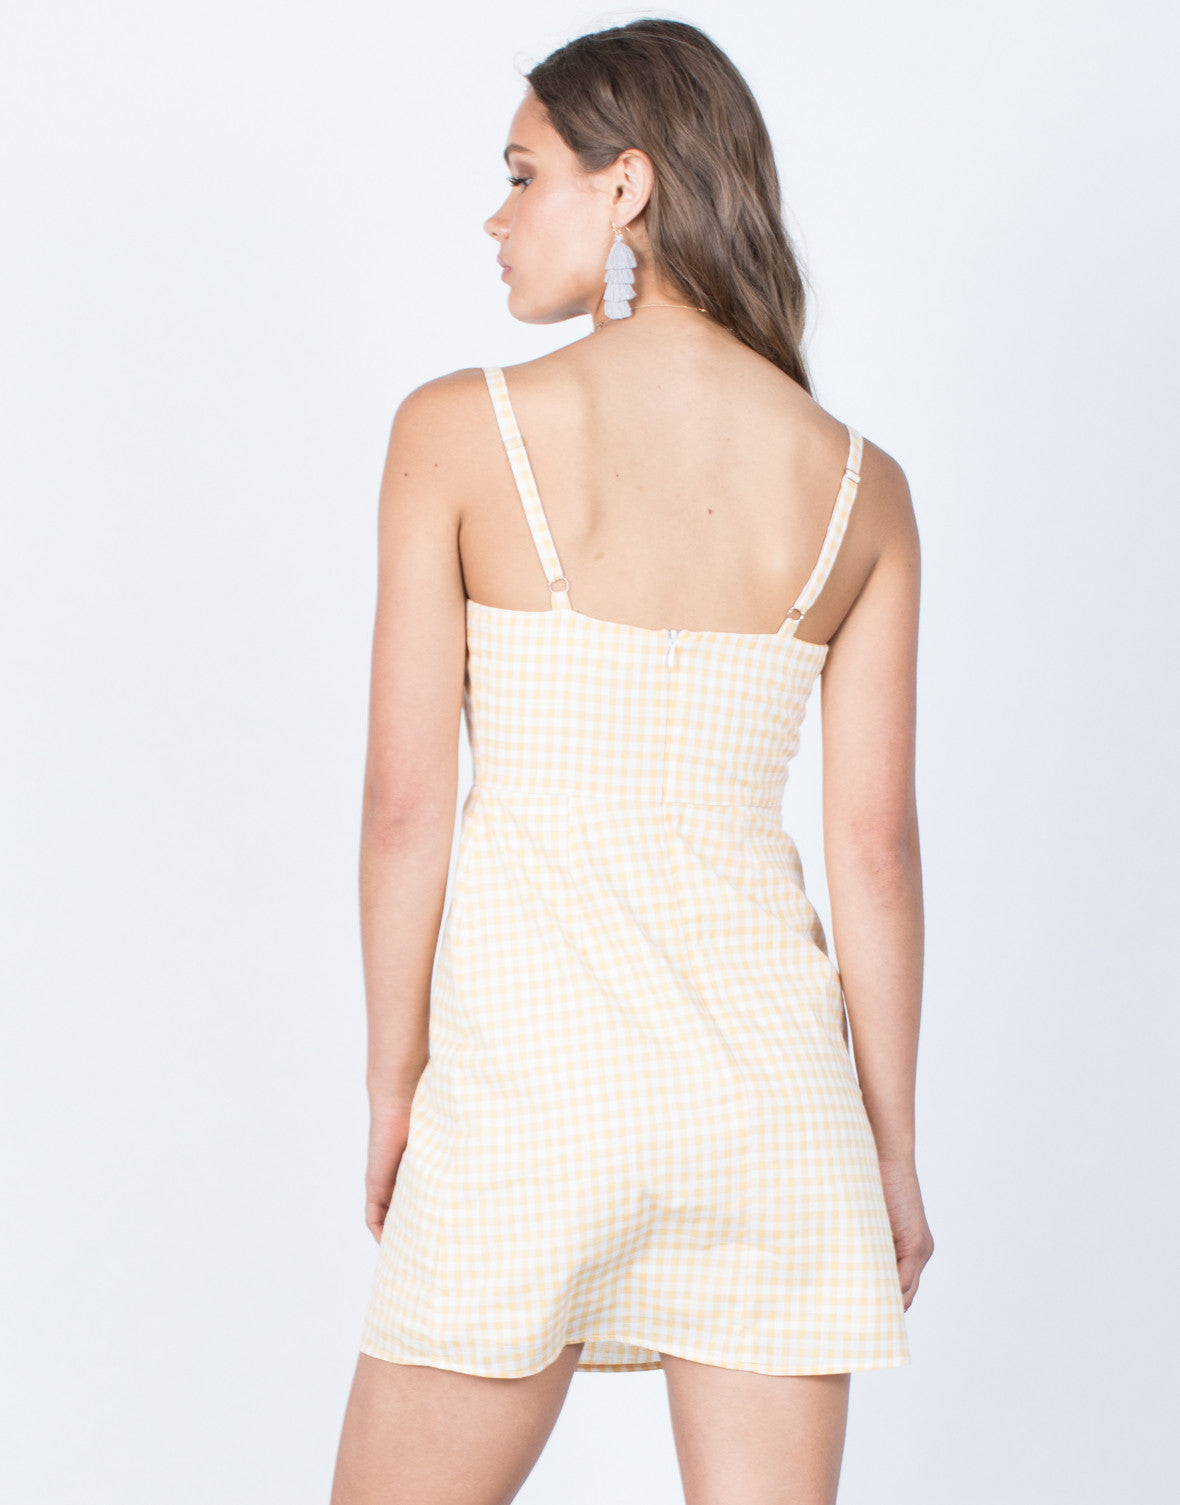 Back View of My Sunshine Gingham Dress